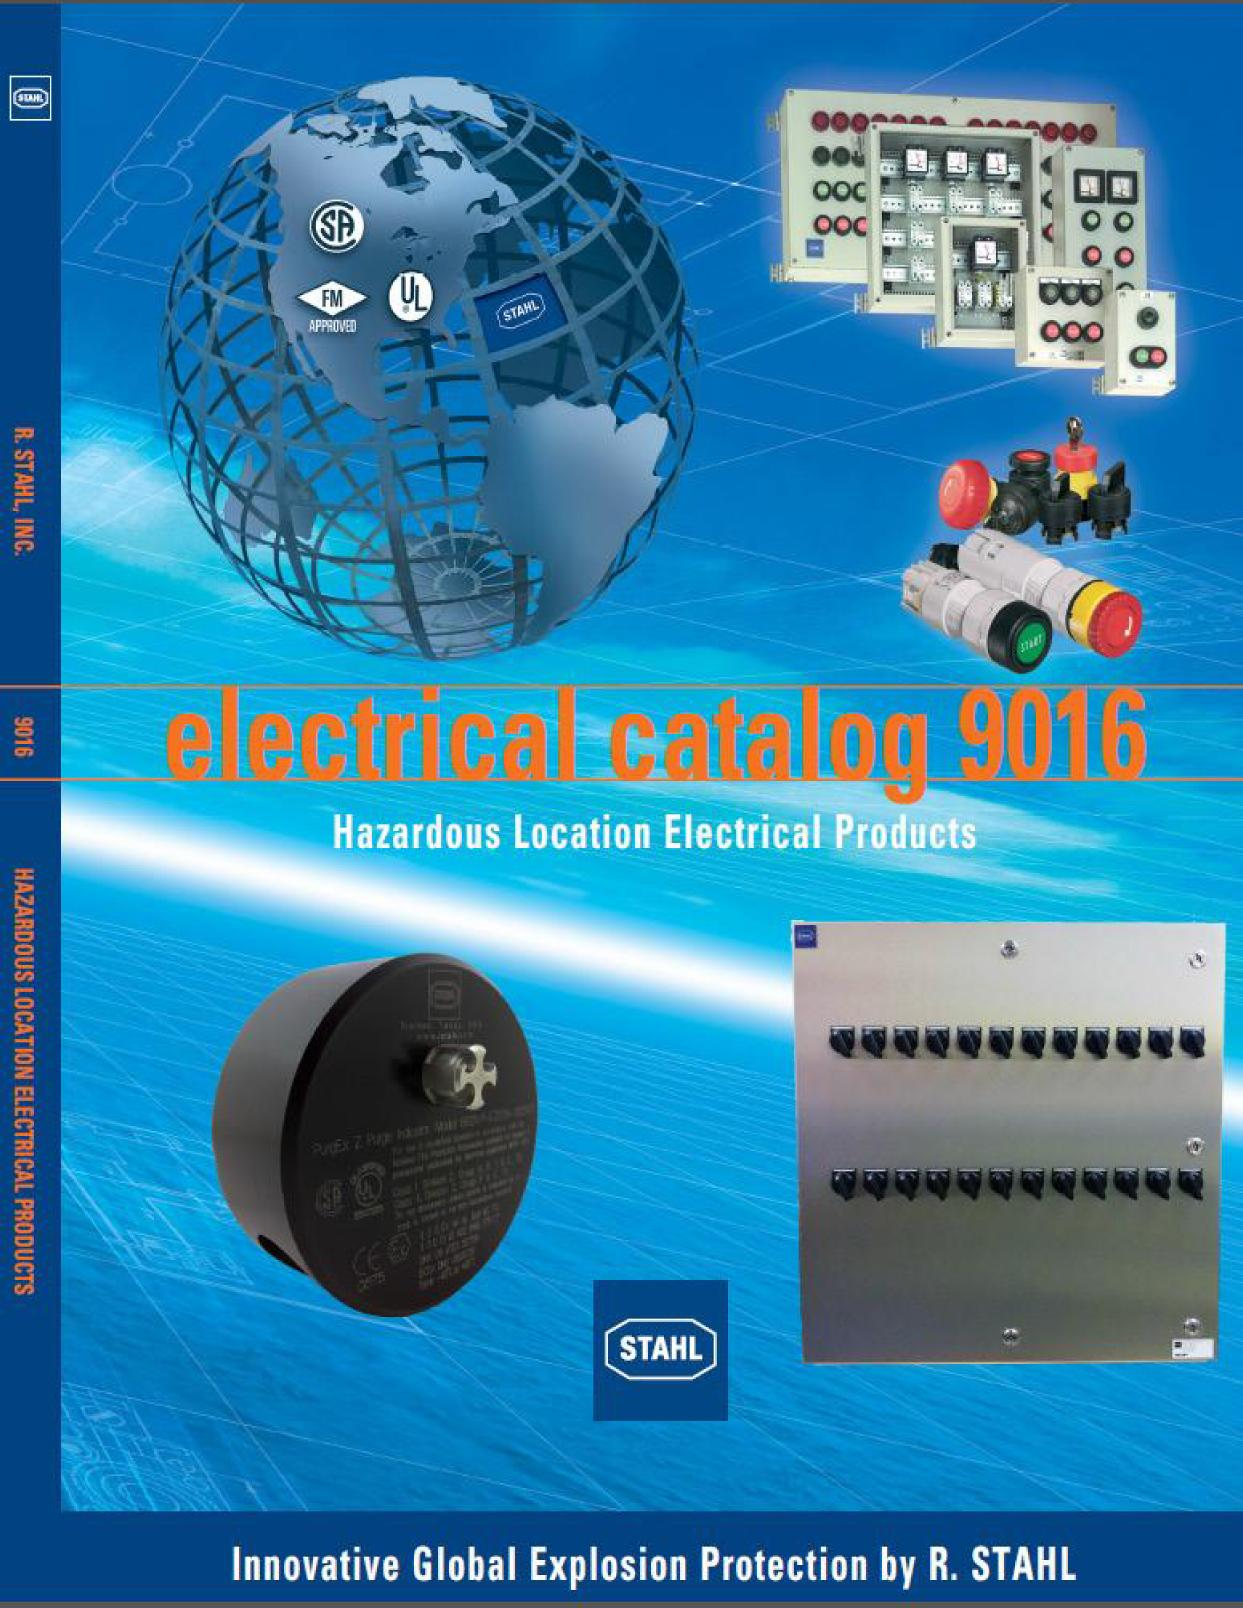 R Stahl Electrical Catalog 9016